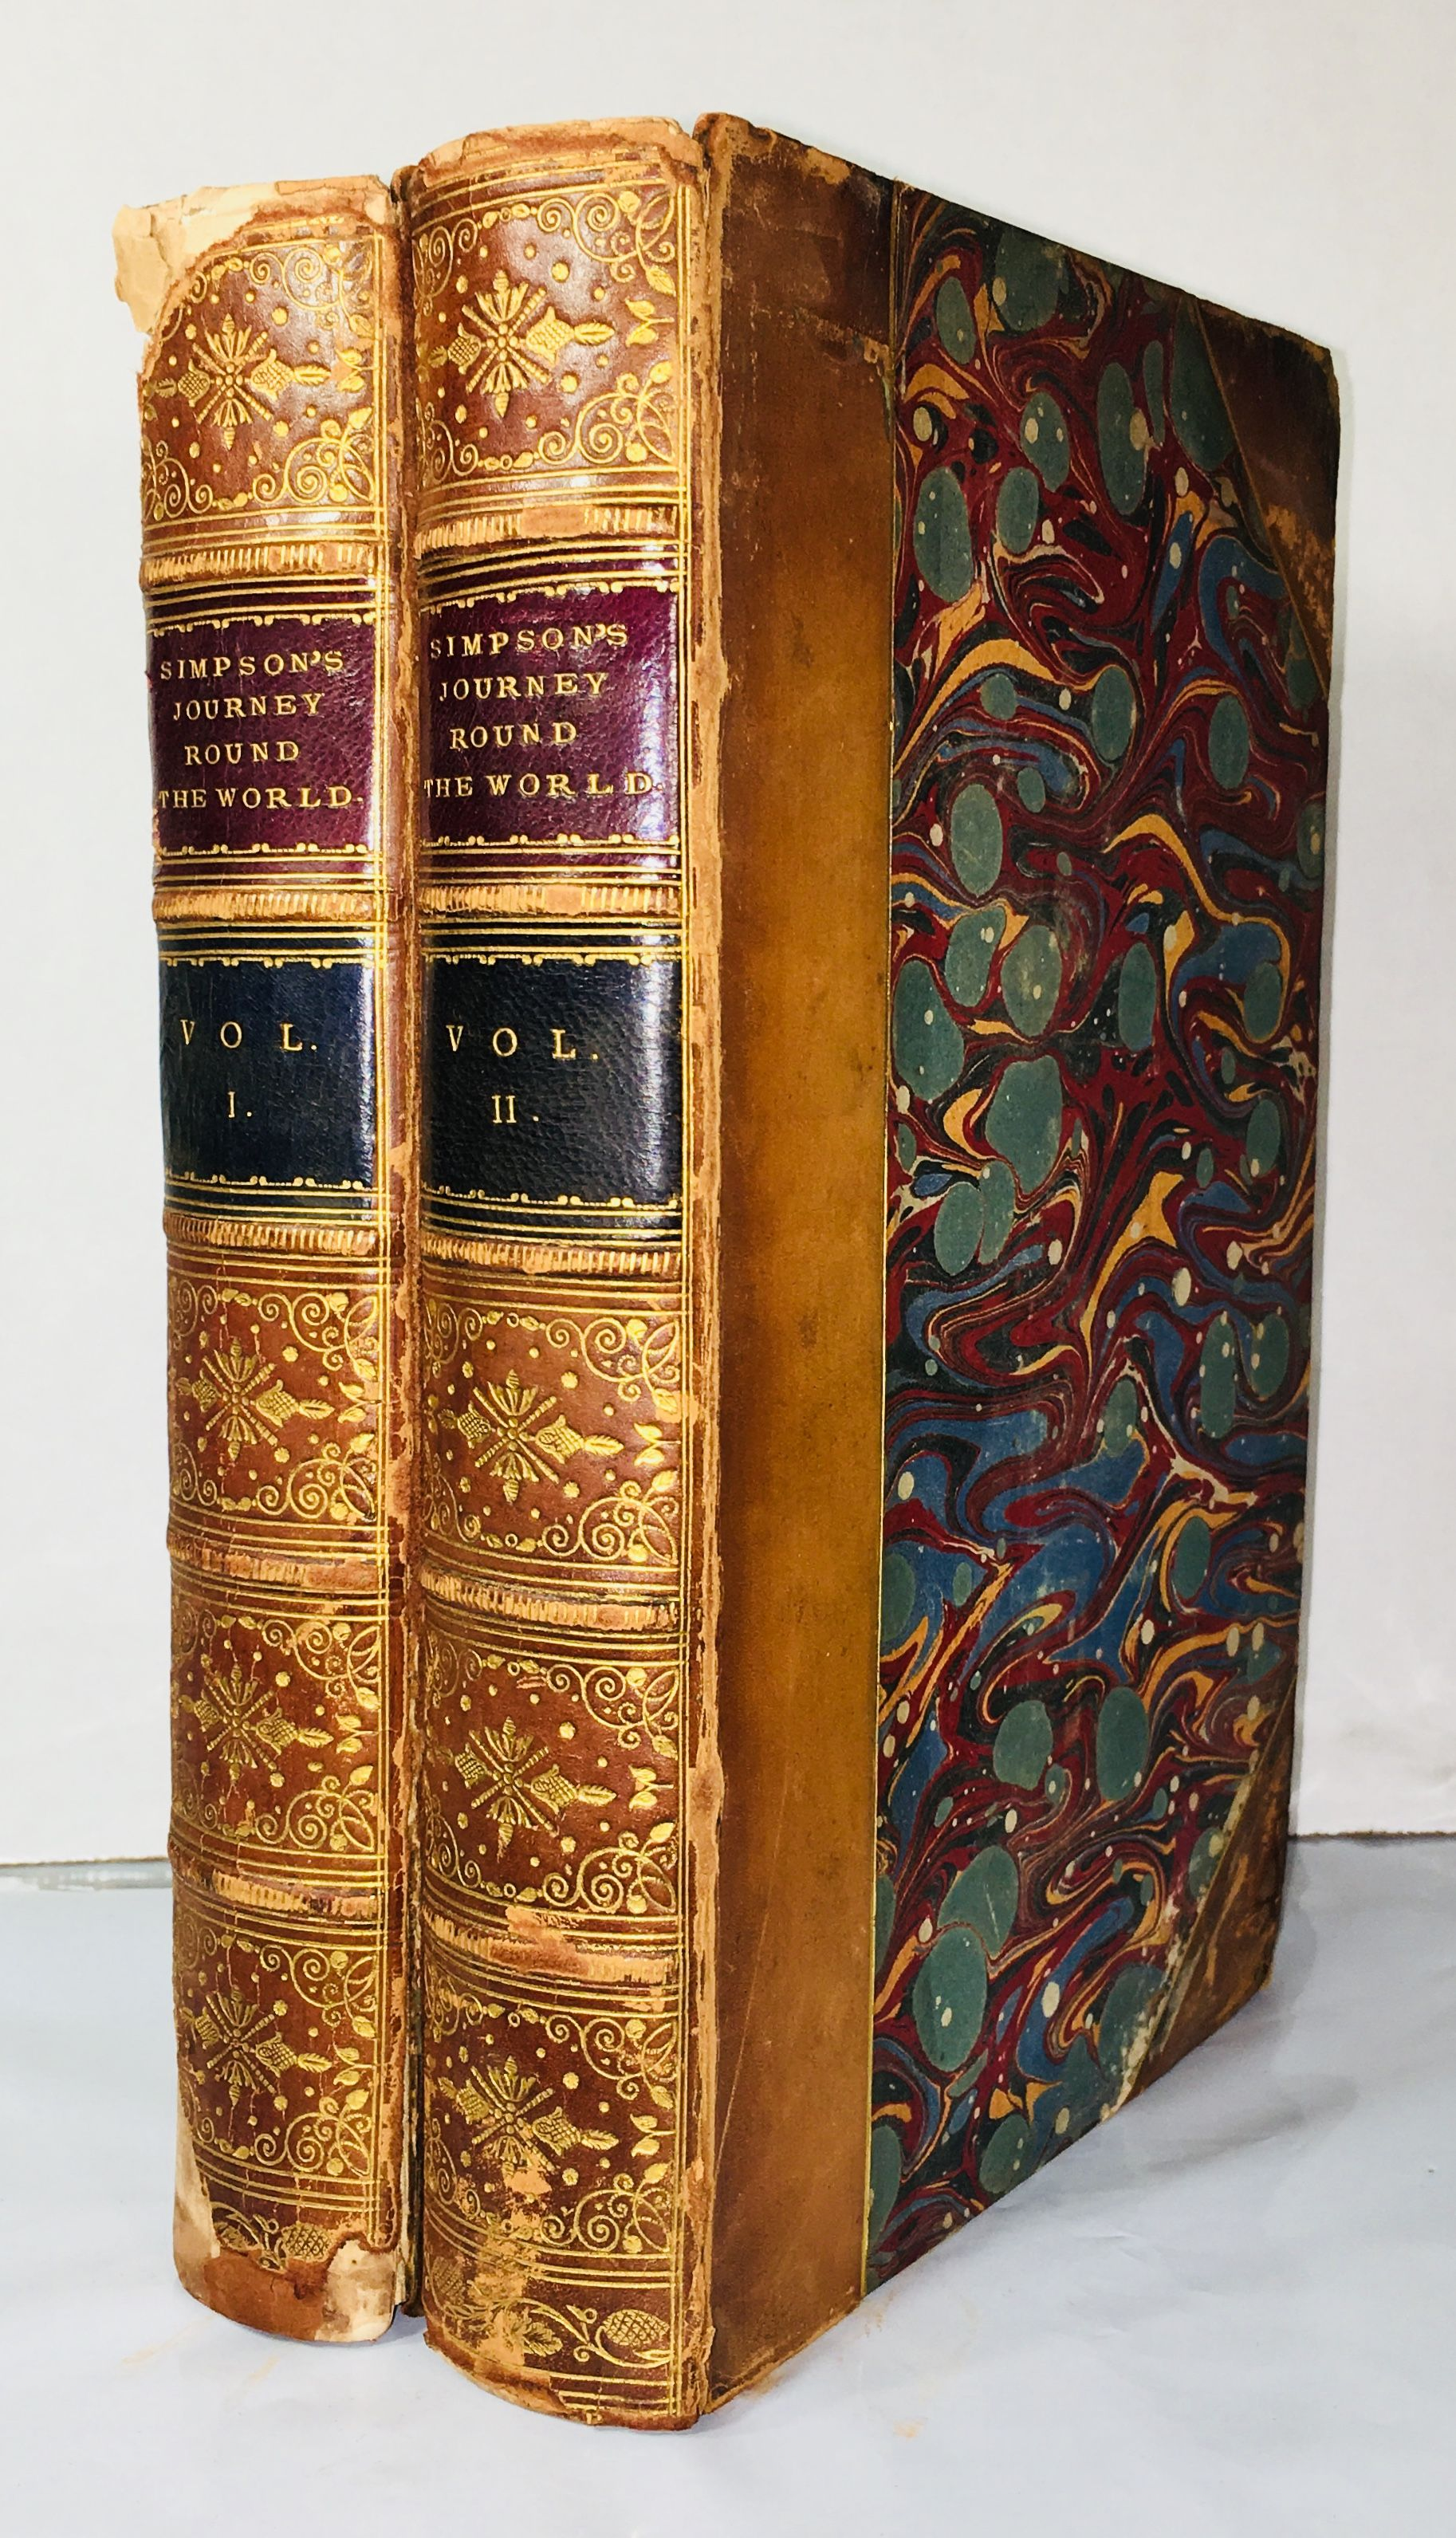 Narrative of a Journey Round the World During the Years 1841 and 1842, Simpson, Sir George